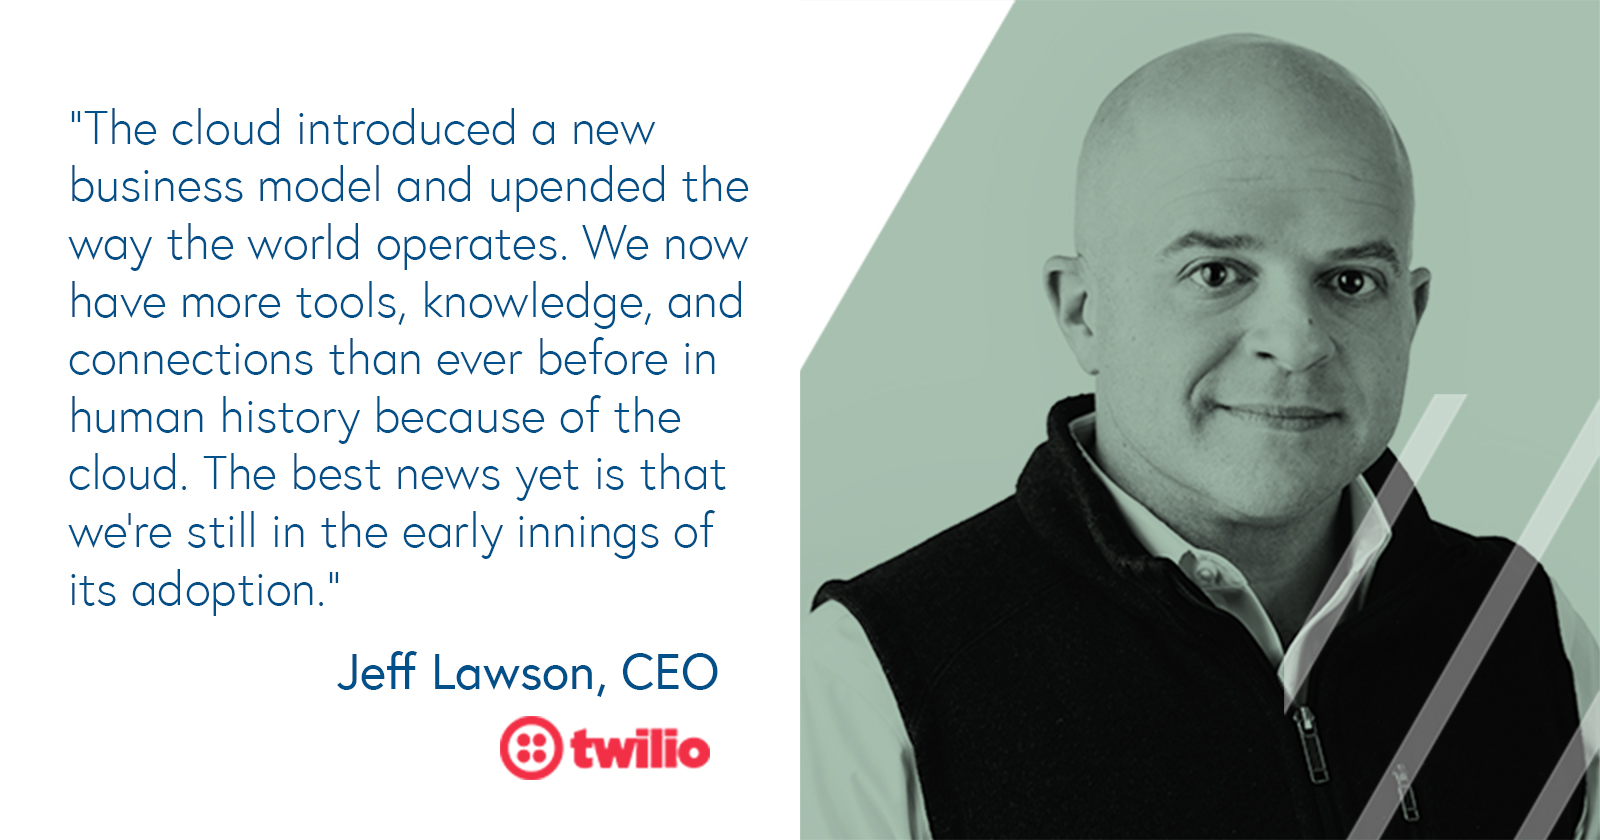 Jeff Lawson, CEO of Twilio on how the cloud upended the way the world operates